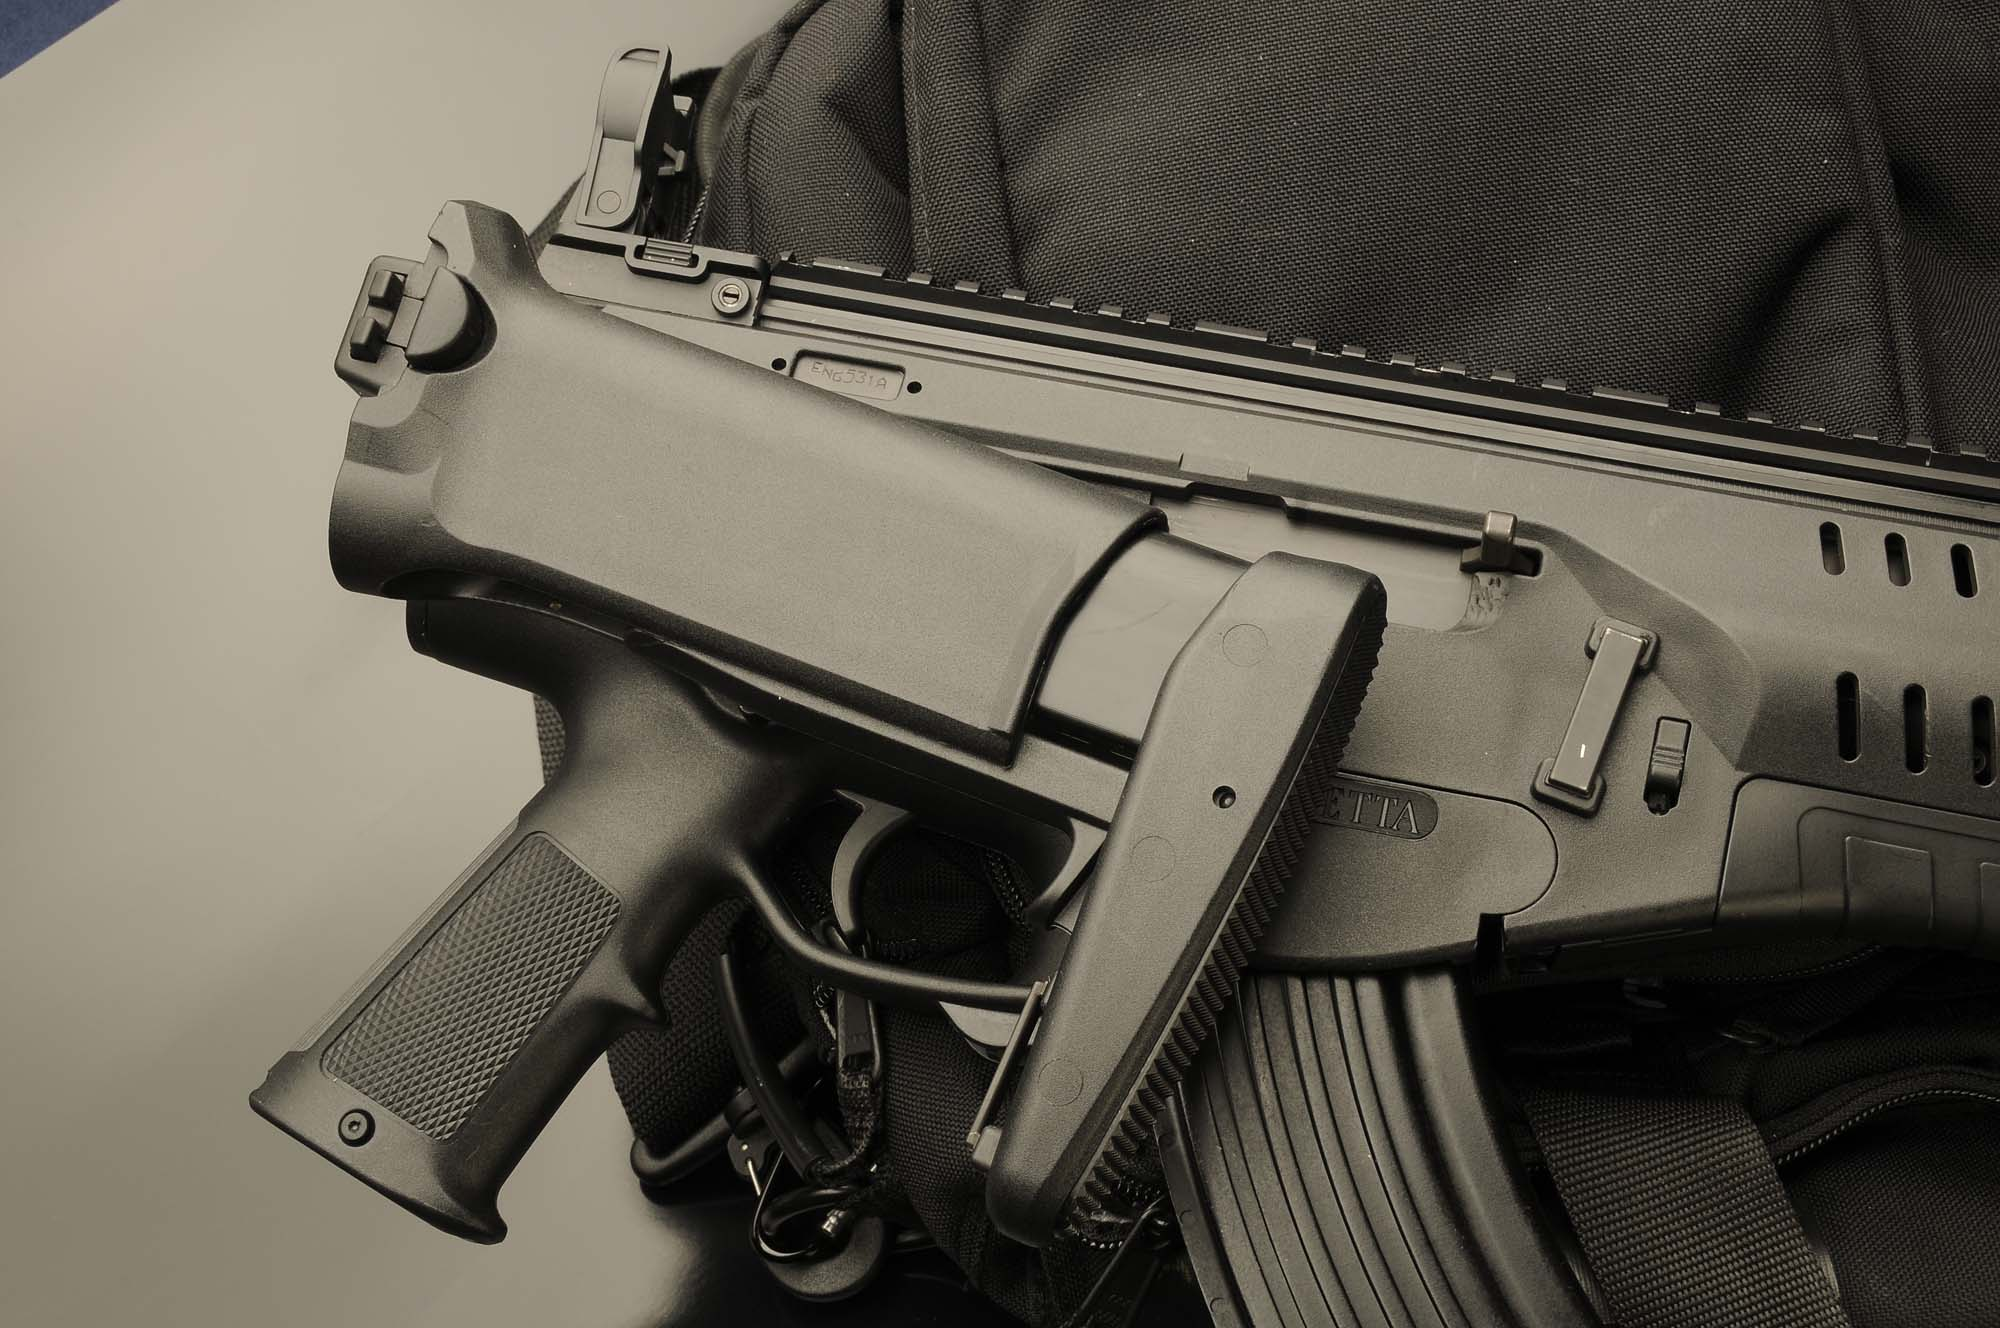 In the closed position, the ARX 160's stock does not hinder the handling of the weapon and it's basic operation